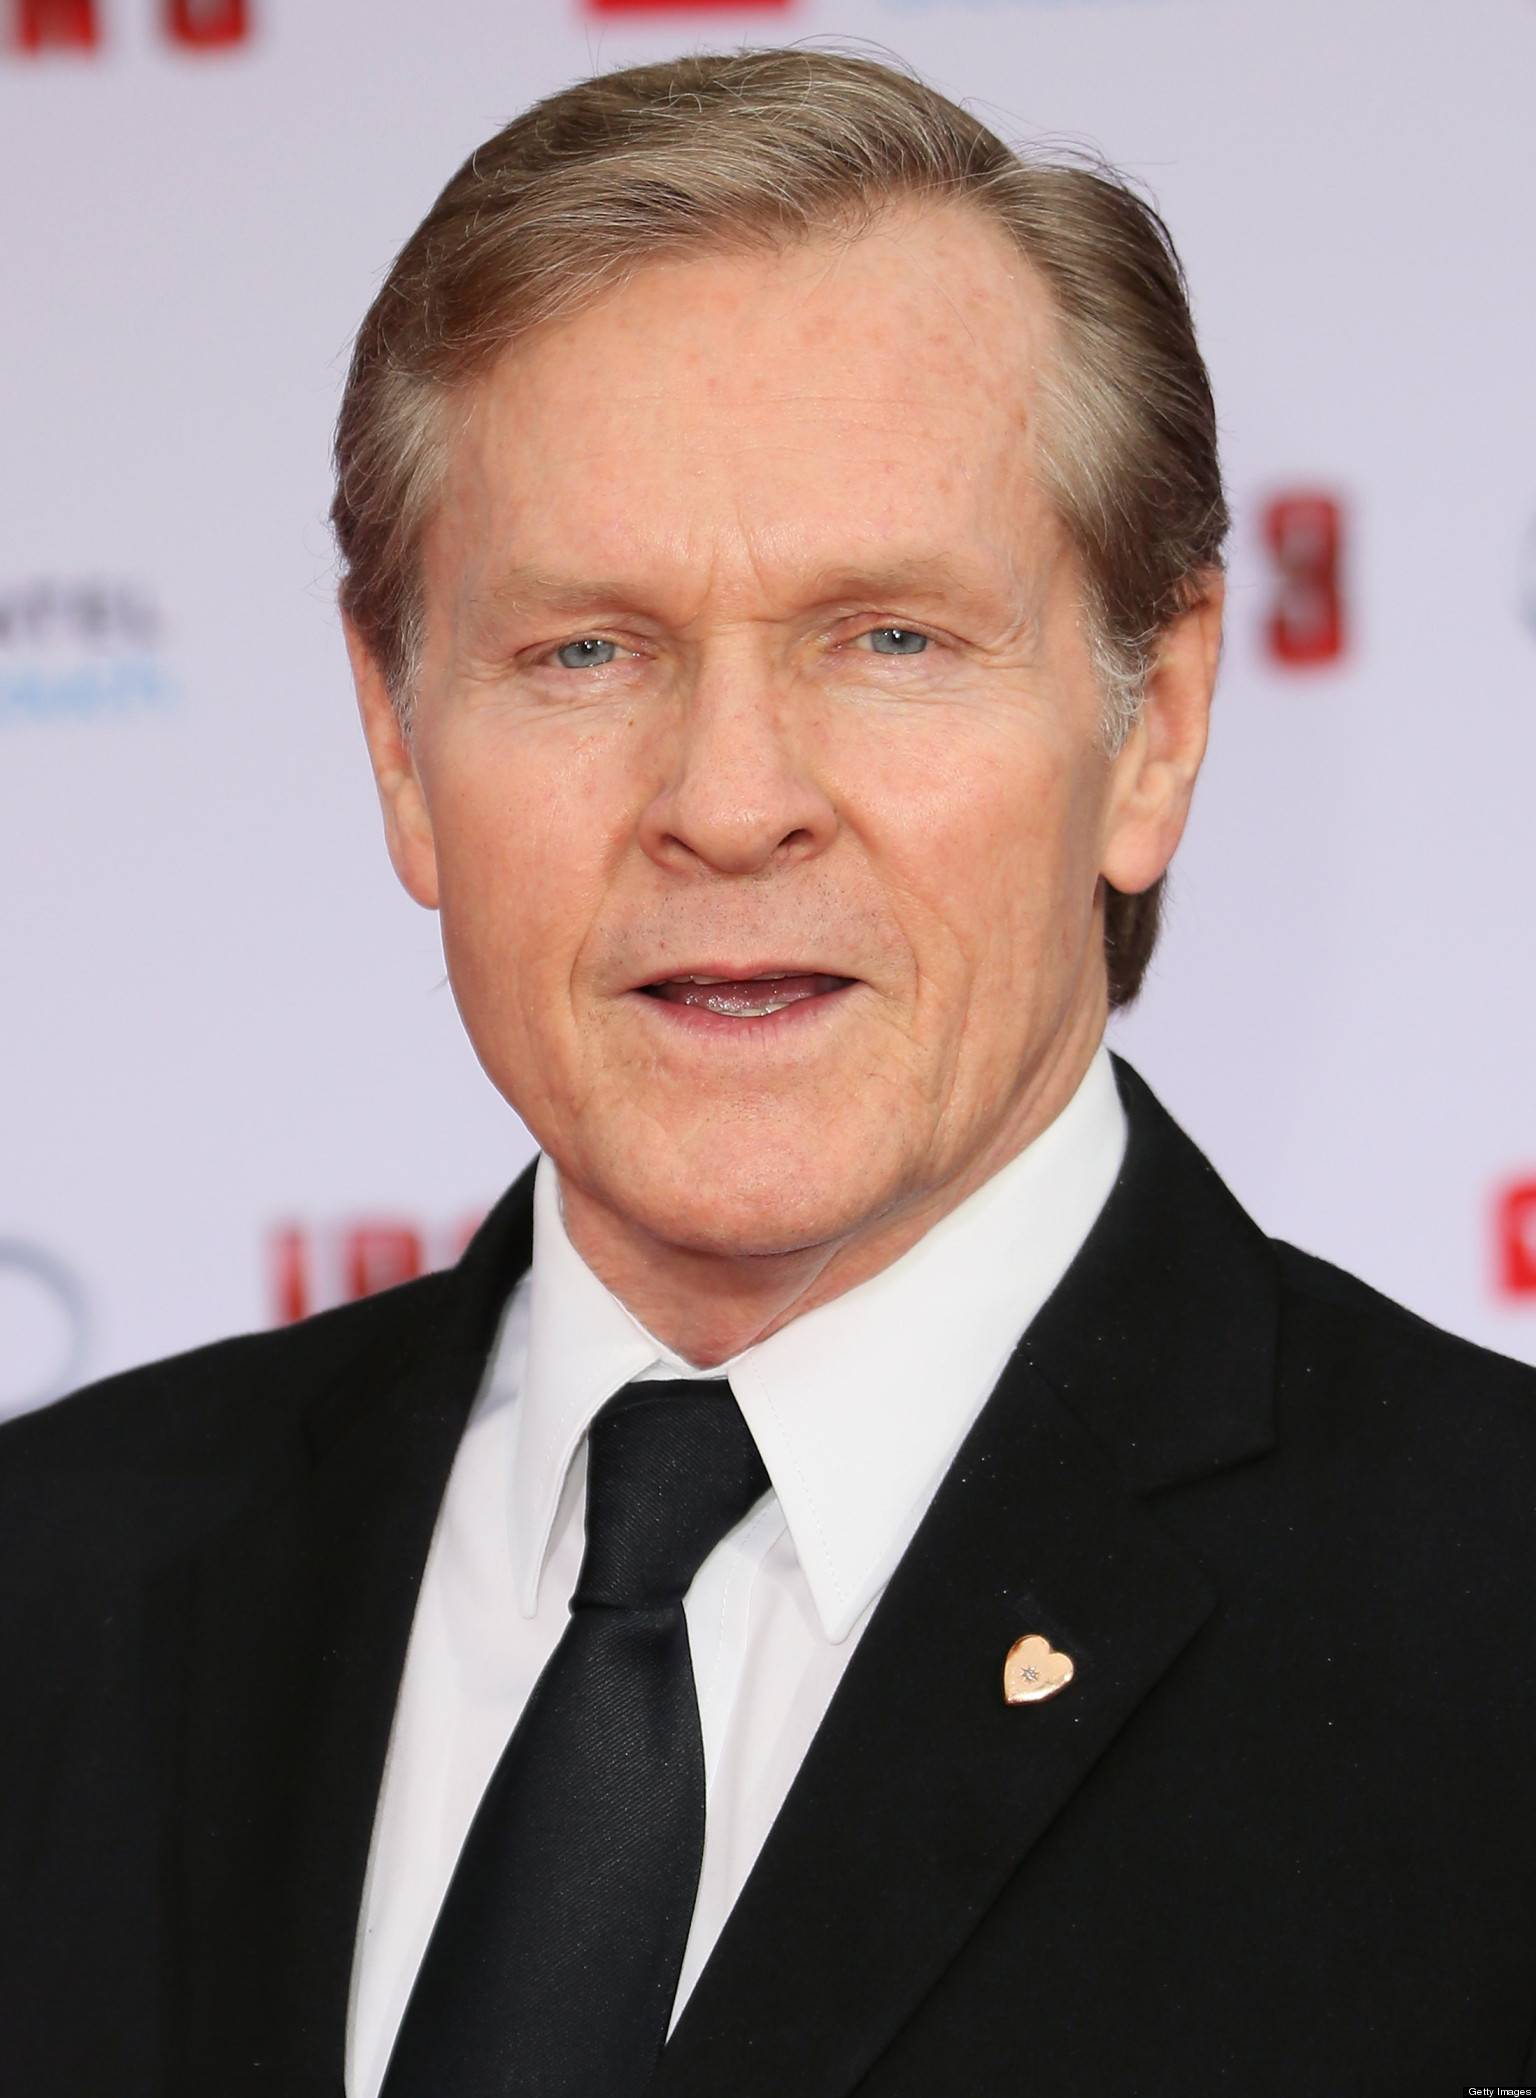 The 67-year old son of father (?) and mother(?), 173 cm tall William Sadler in 2017 photo